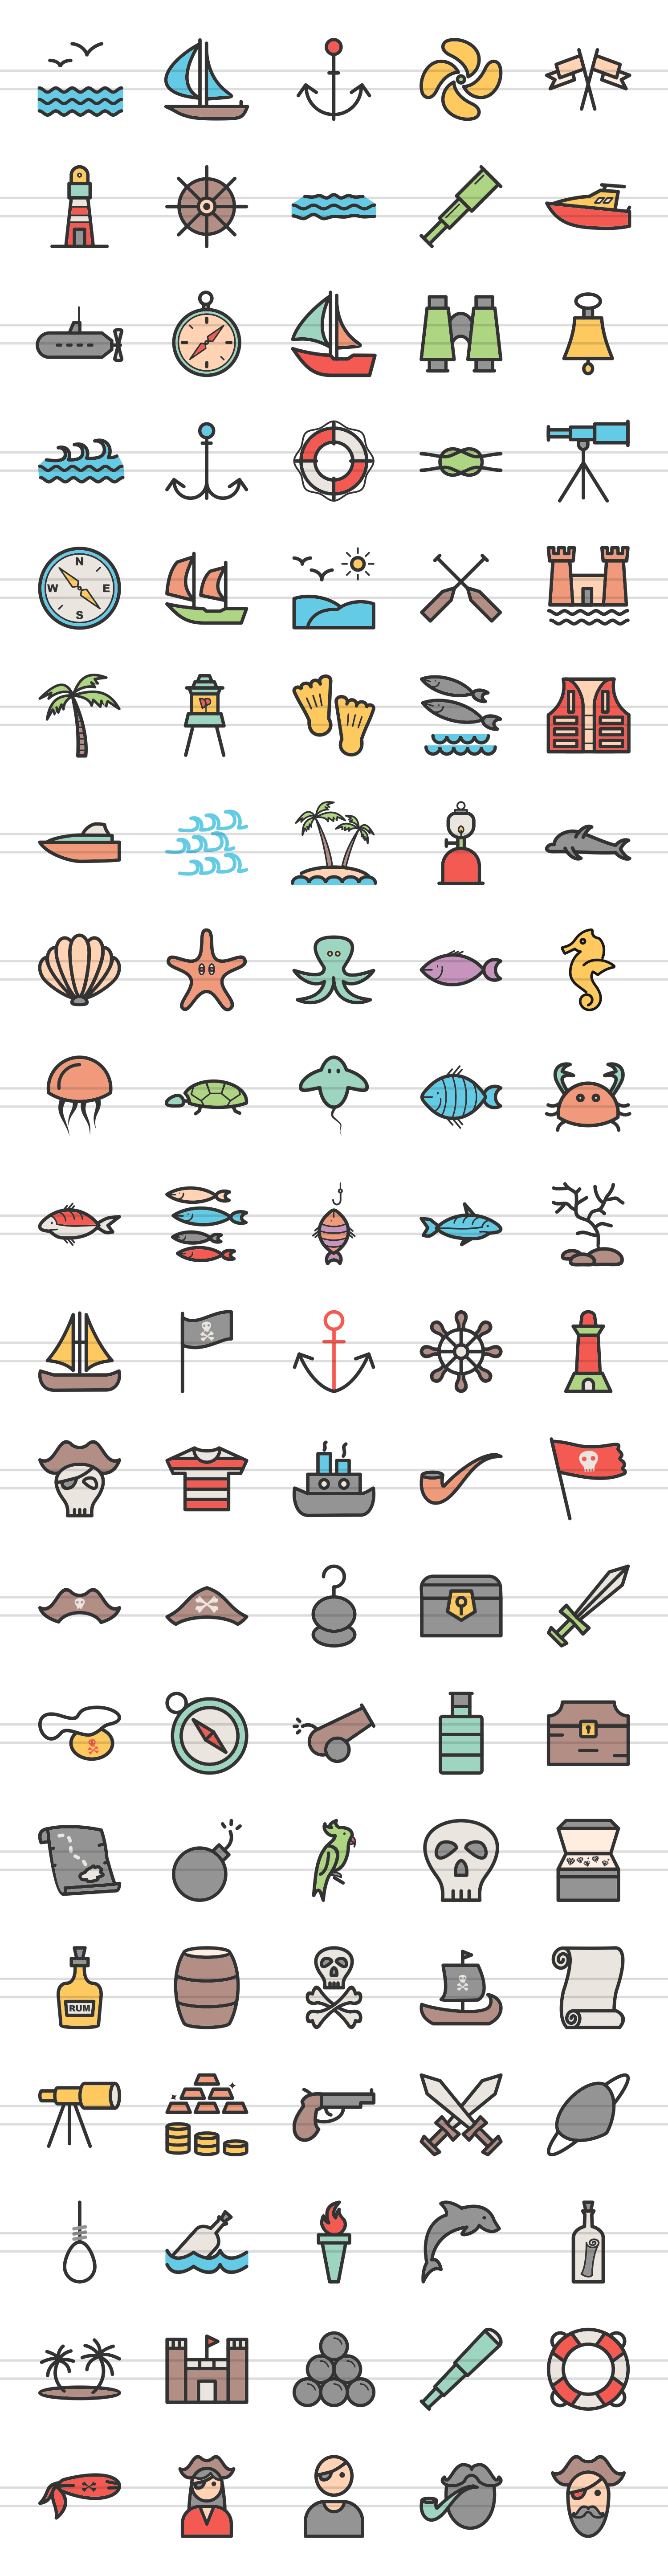 100 Pirate & Sea Filled Line Icons example image 2